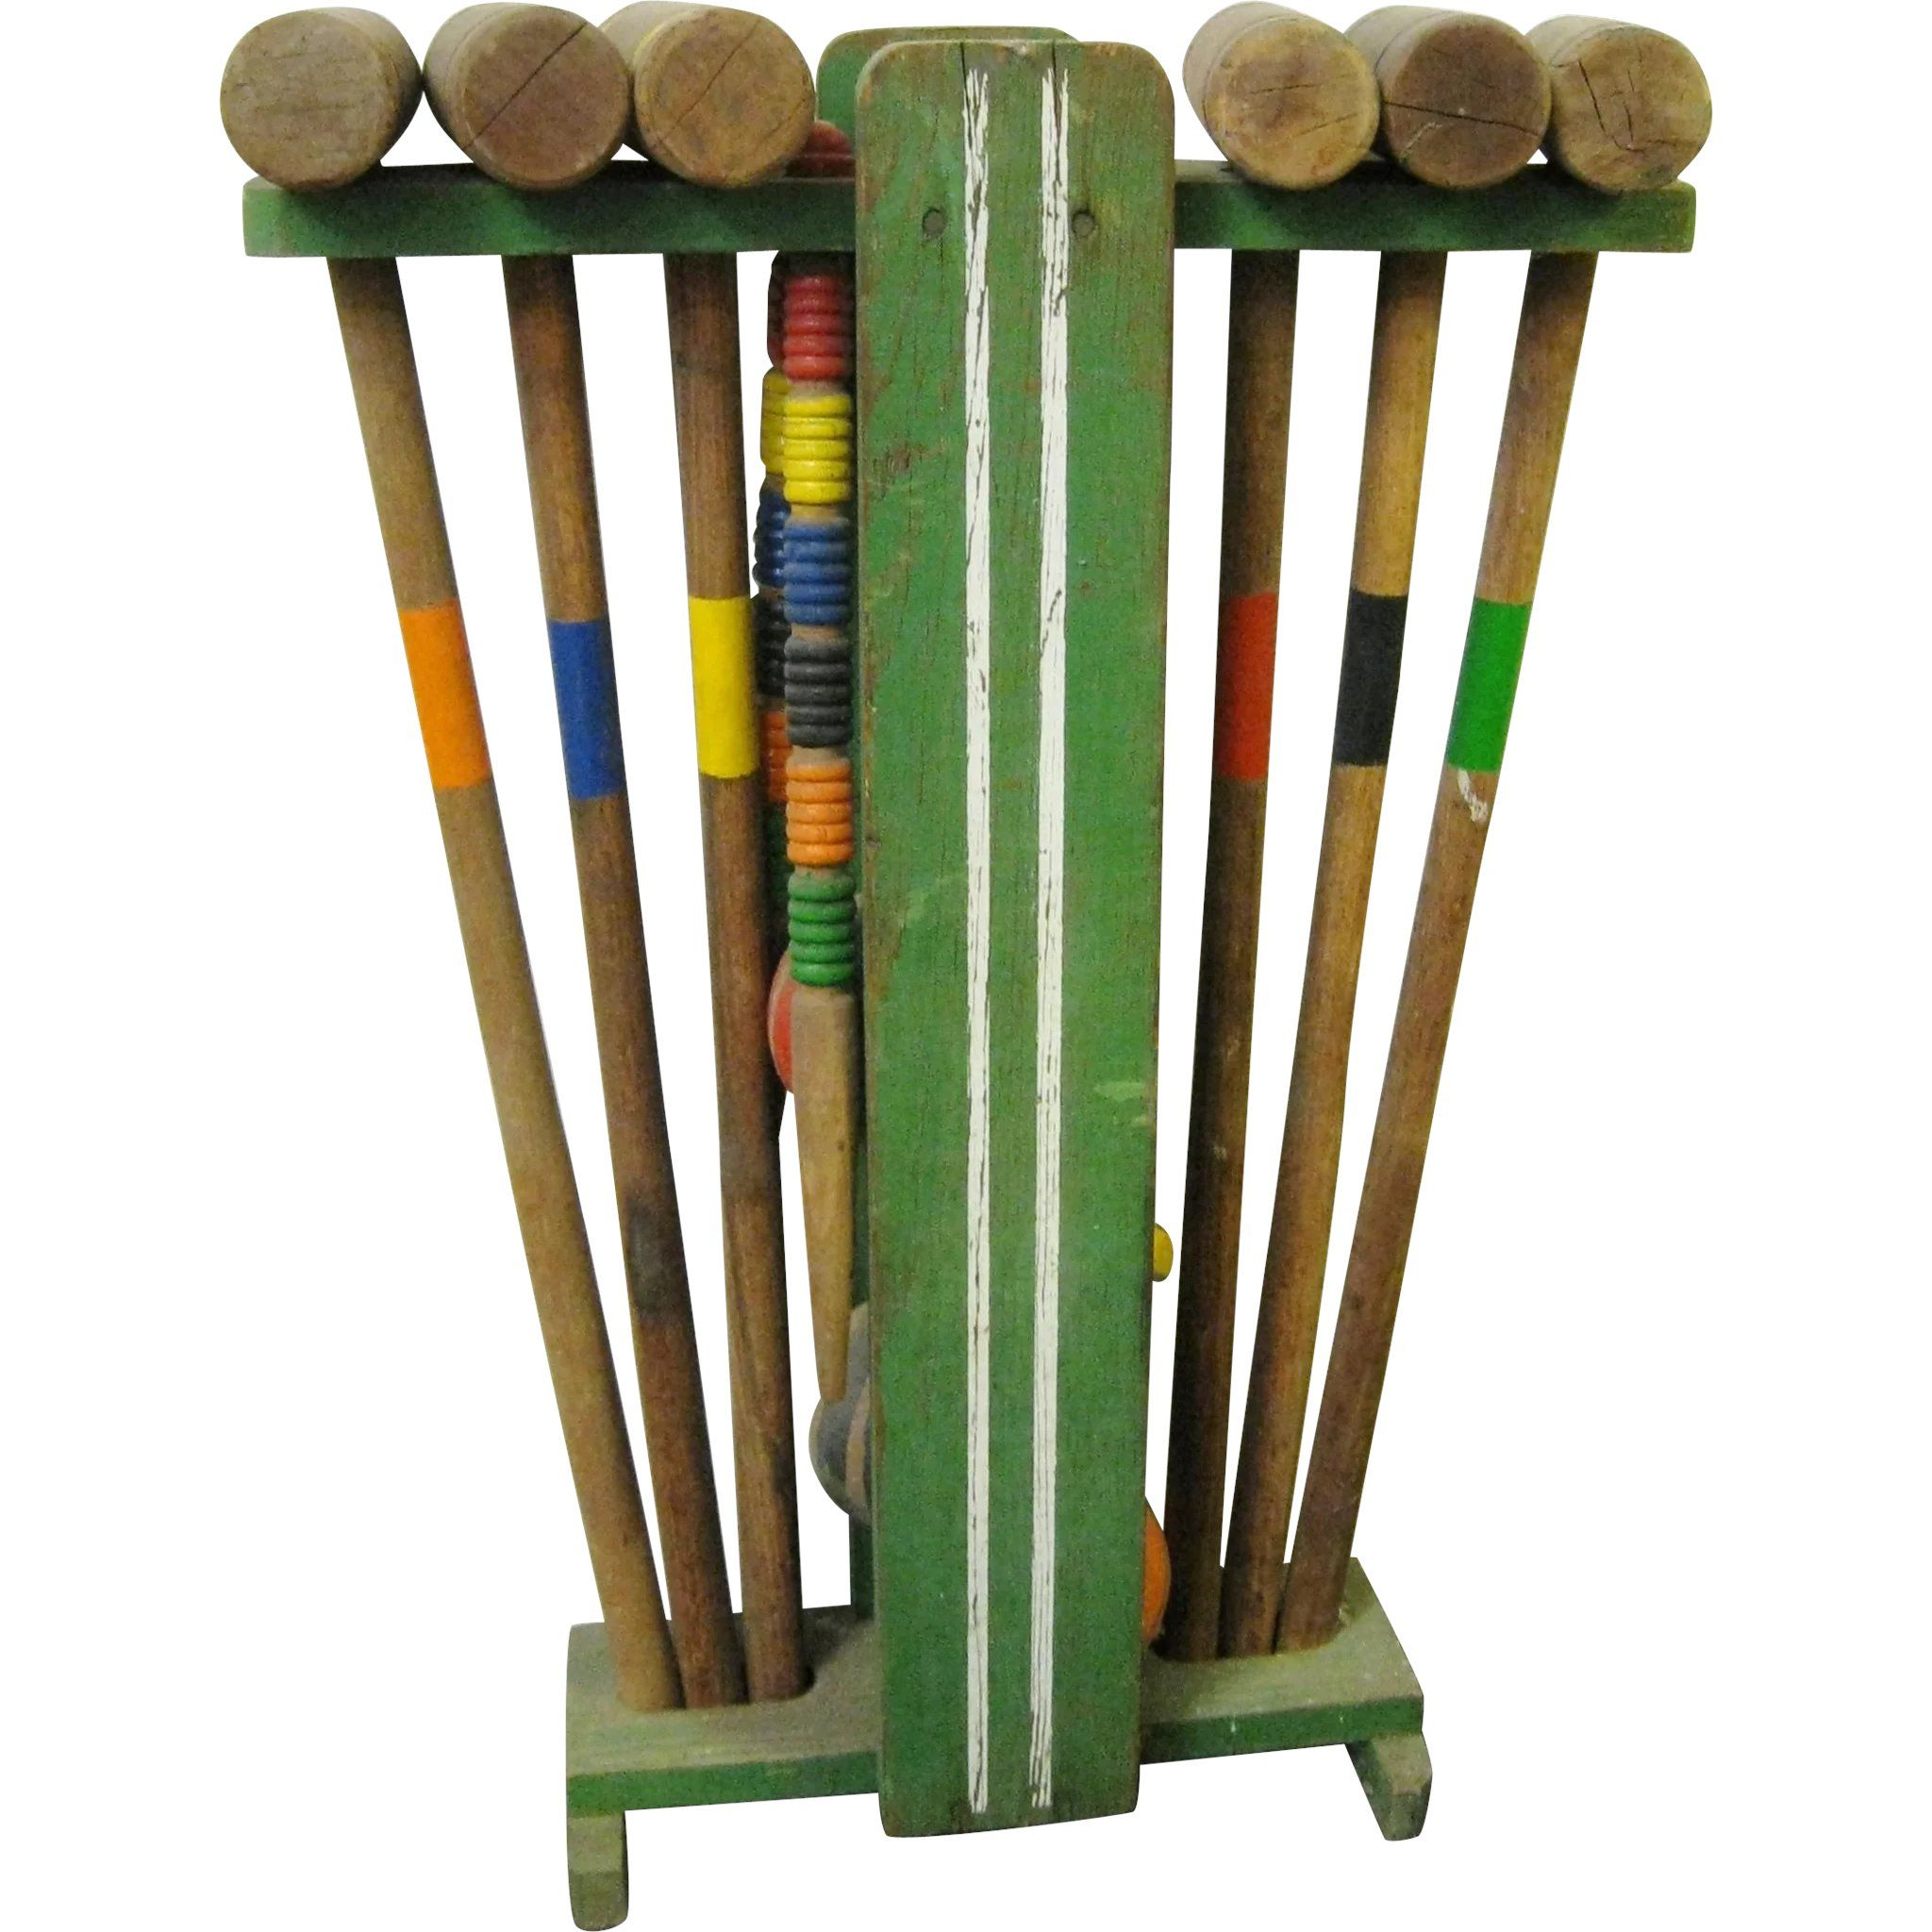 Vintage Wooden Croquet Set With Stand Collectibles